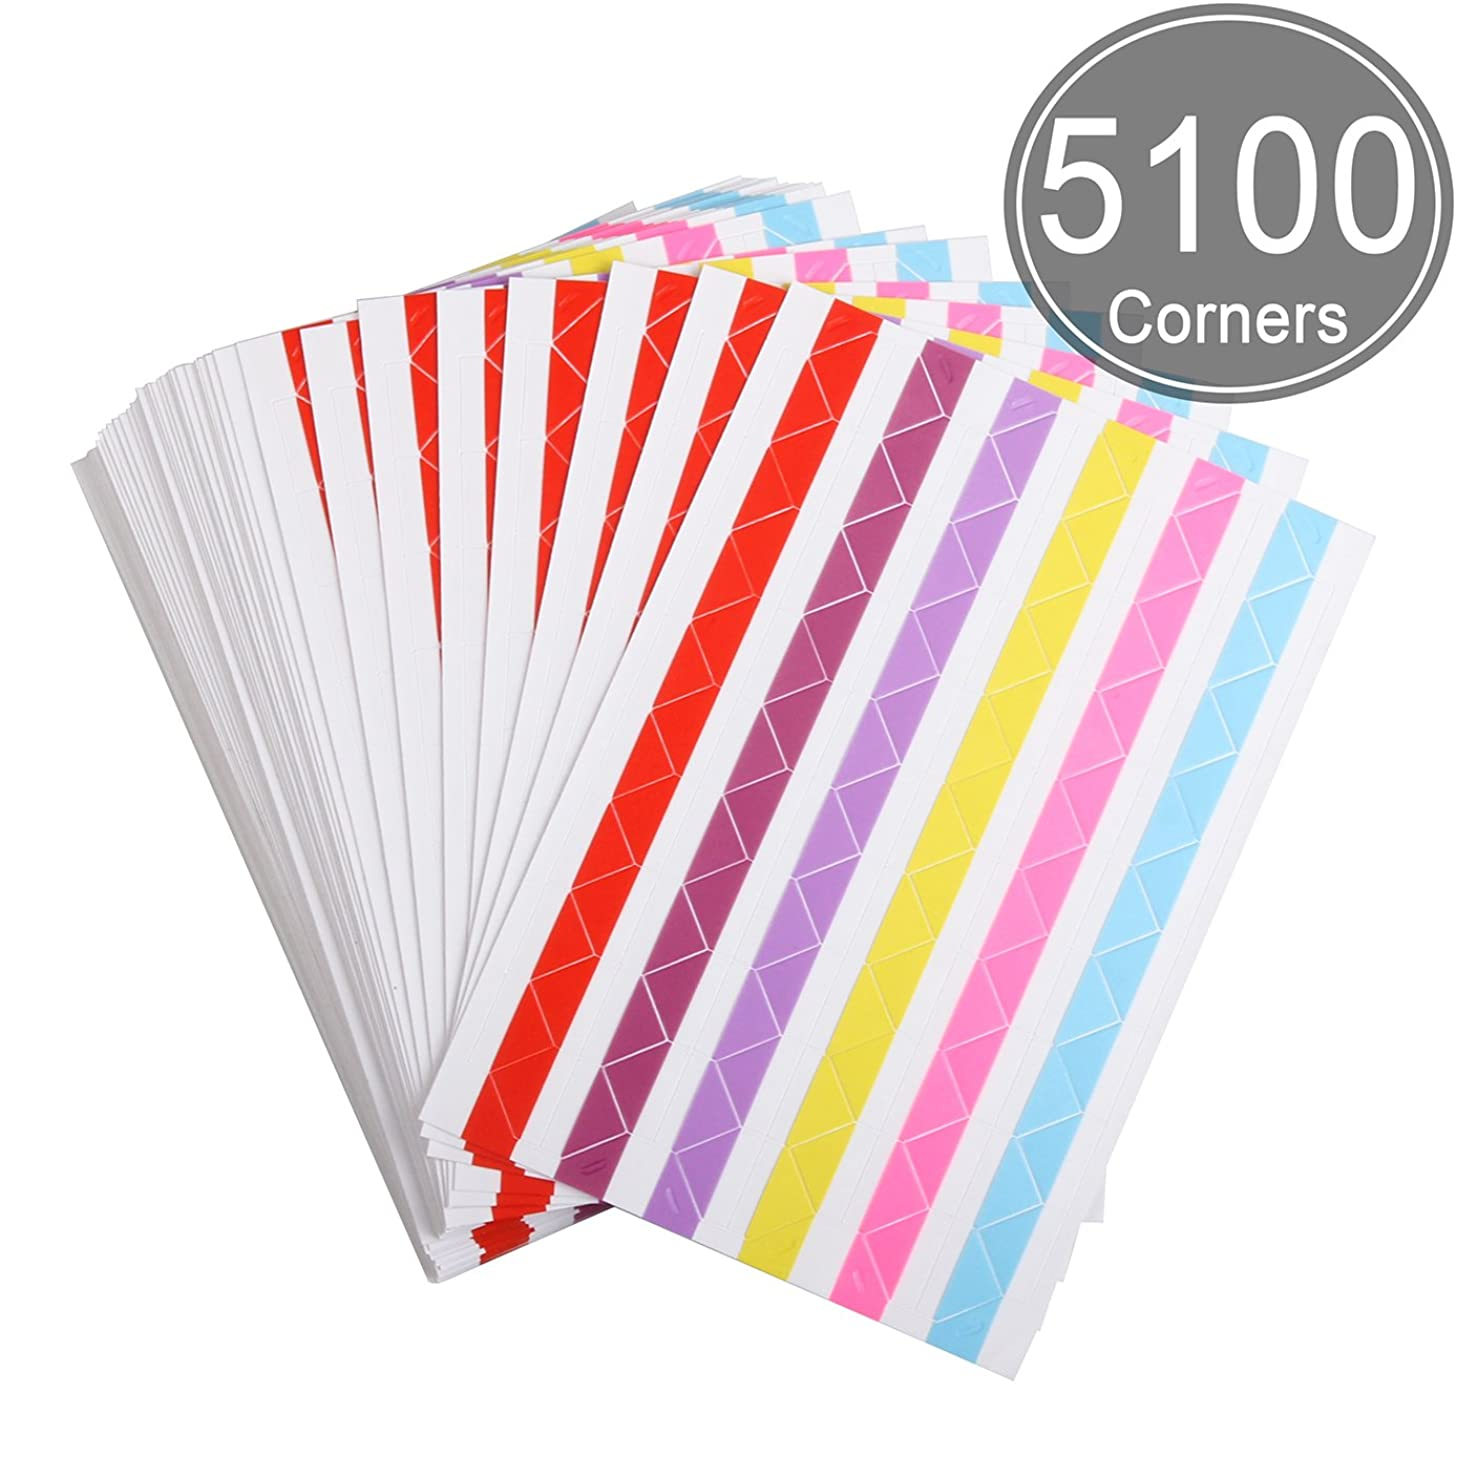 ADVcer 50 Sheets Self Adhesive Photo Corners - Hold 1275 Photos - 6 Colors 5100 pcs Photo Mounting Corner Stickers for Polaroid, Instax Foto of DIY Picture Scrapbook and Recollections Photo Album